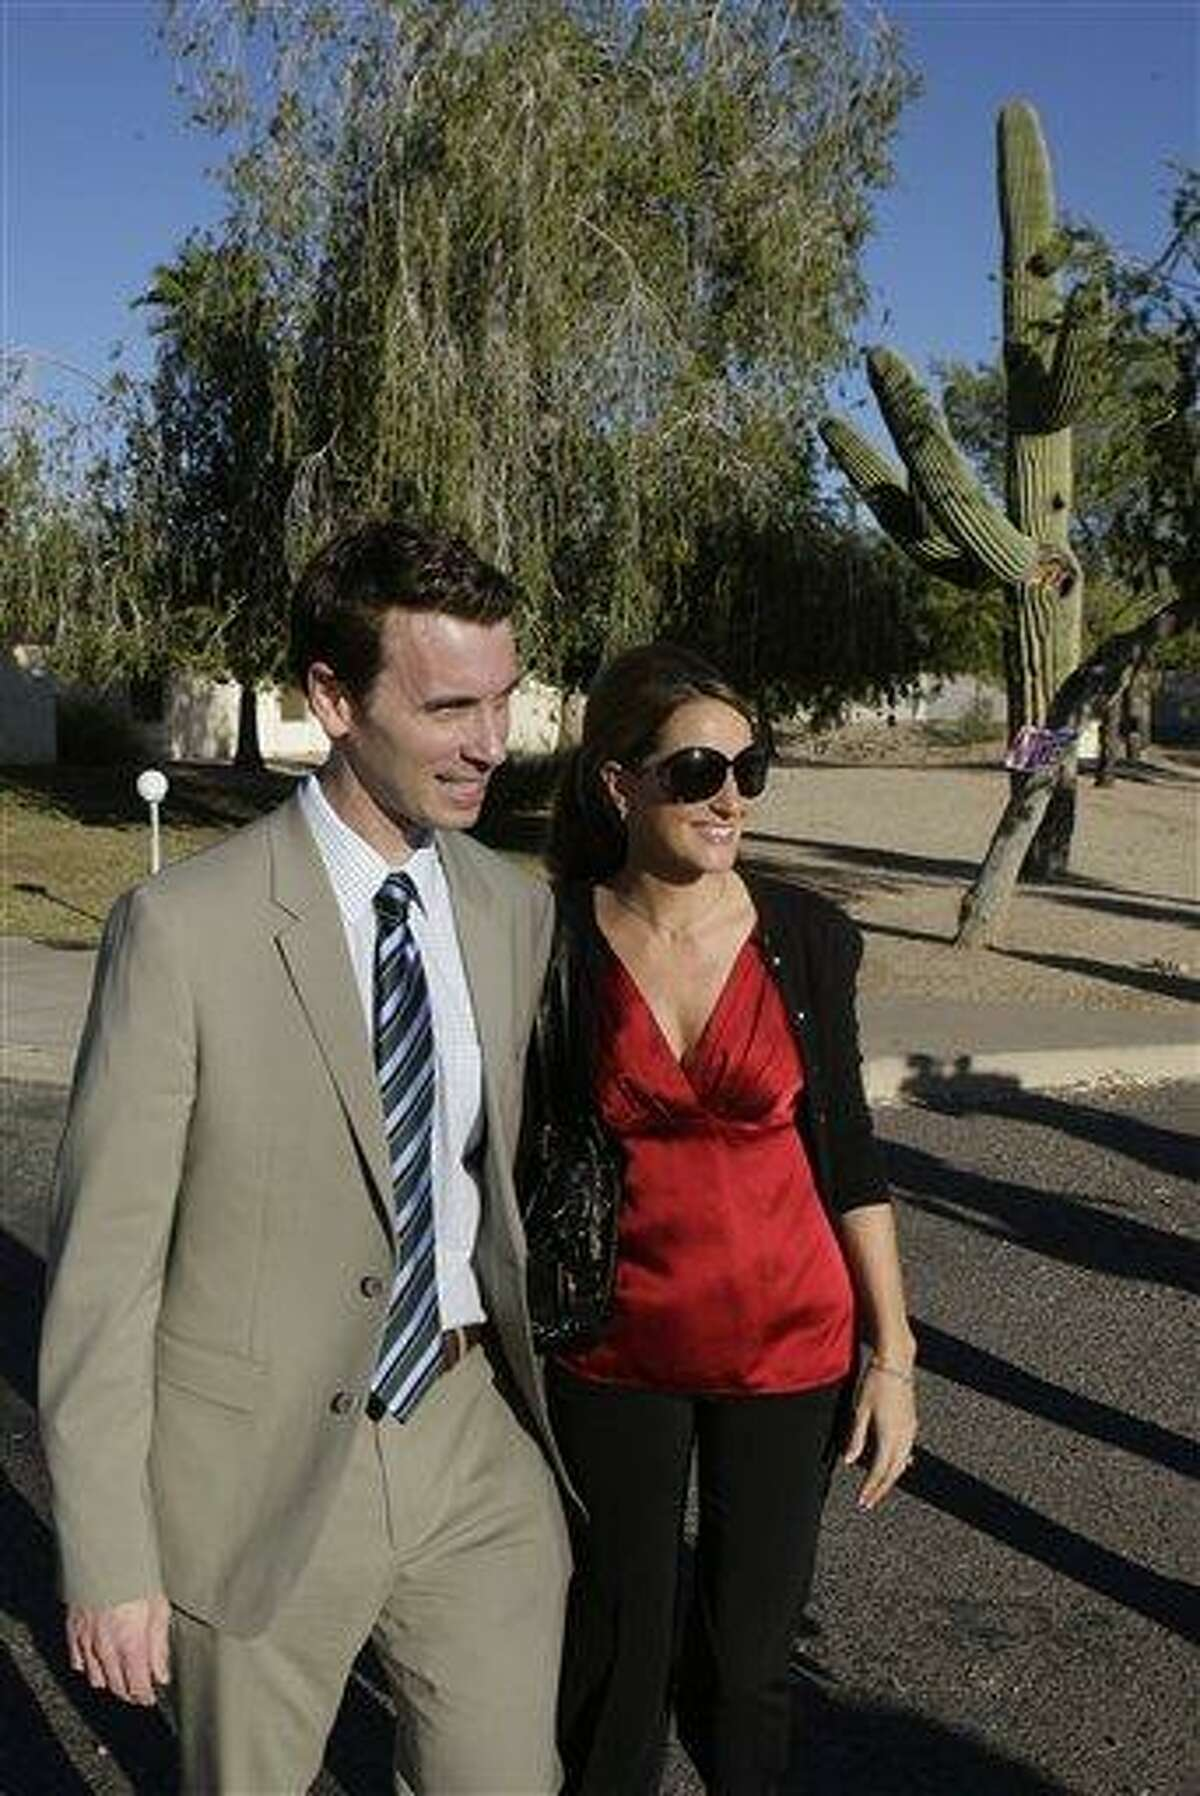 Republican congressional candidate for the 3rd District Ben Quayle, left, leaves his polling station after voting with his wife Tiffany Quayle on election day Tuesday, Nov. 2, 2010, in Phoenix. (AP Photo/Ross D. Franklin)